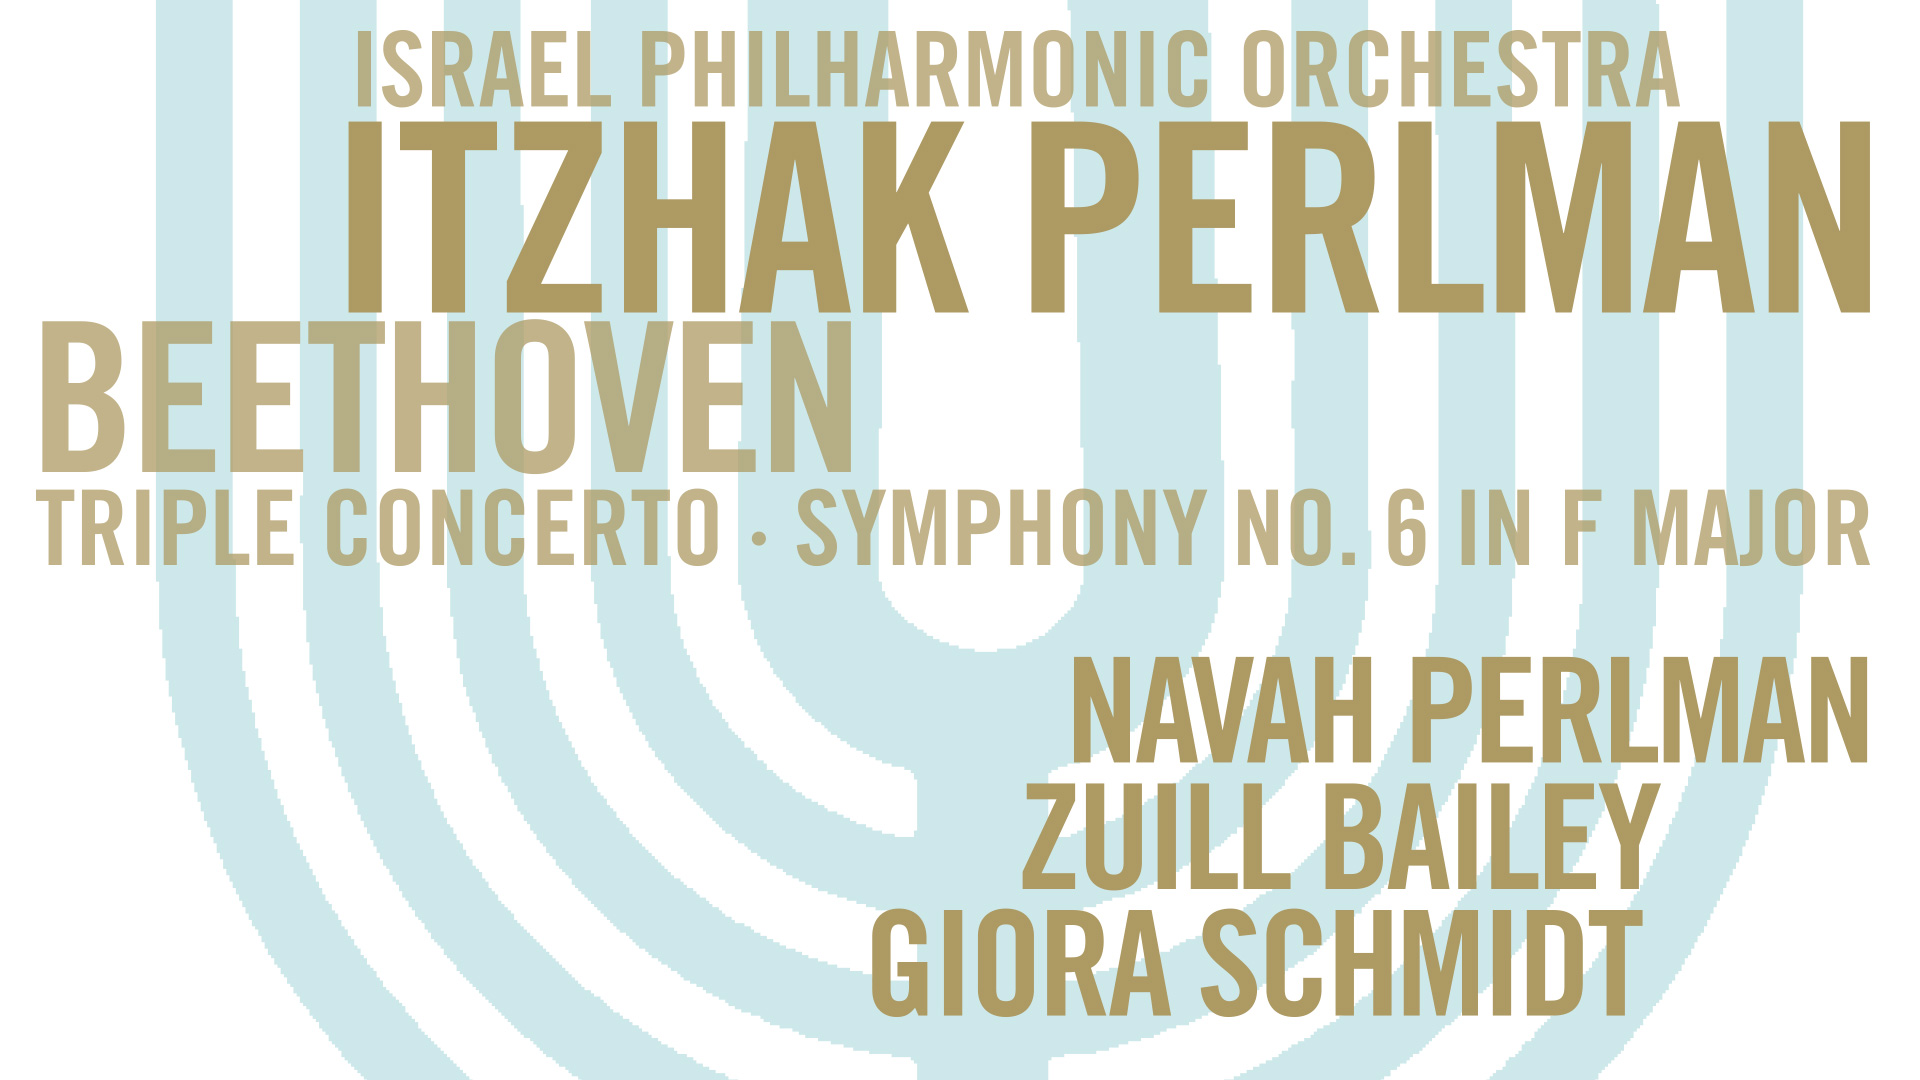 Israel Philharmonic Orchestra, Itzhak Perlman - Beethoven: Triple Concerto, Symphony No. 6 in F major